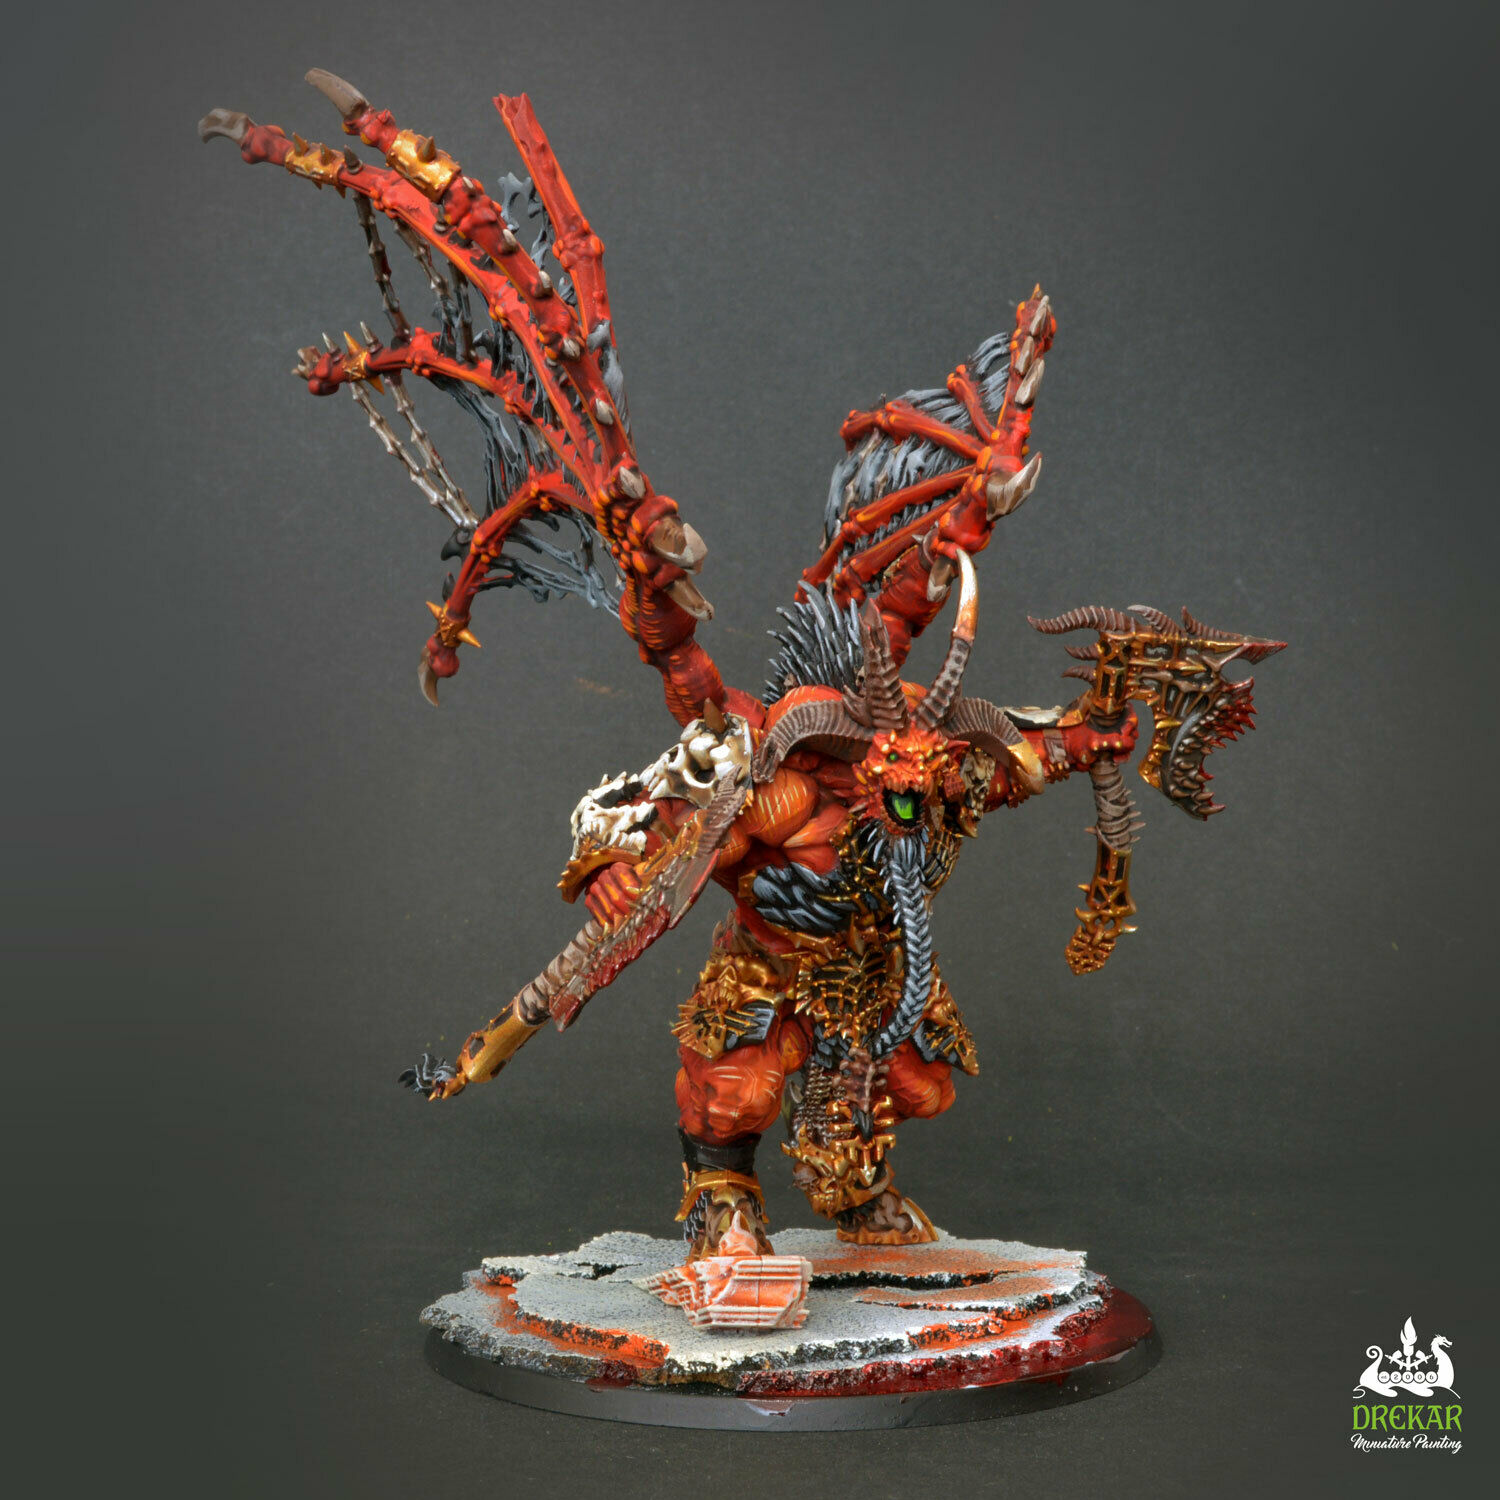 Bennys Chaos Küche Skarbrand Blades Of Khorne Chaos Age Of Of Of Sigmar Commission